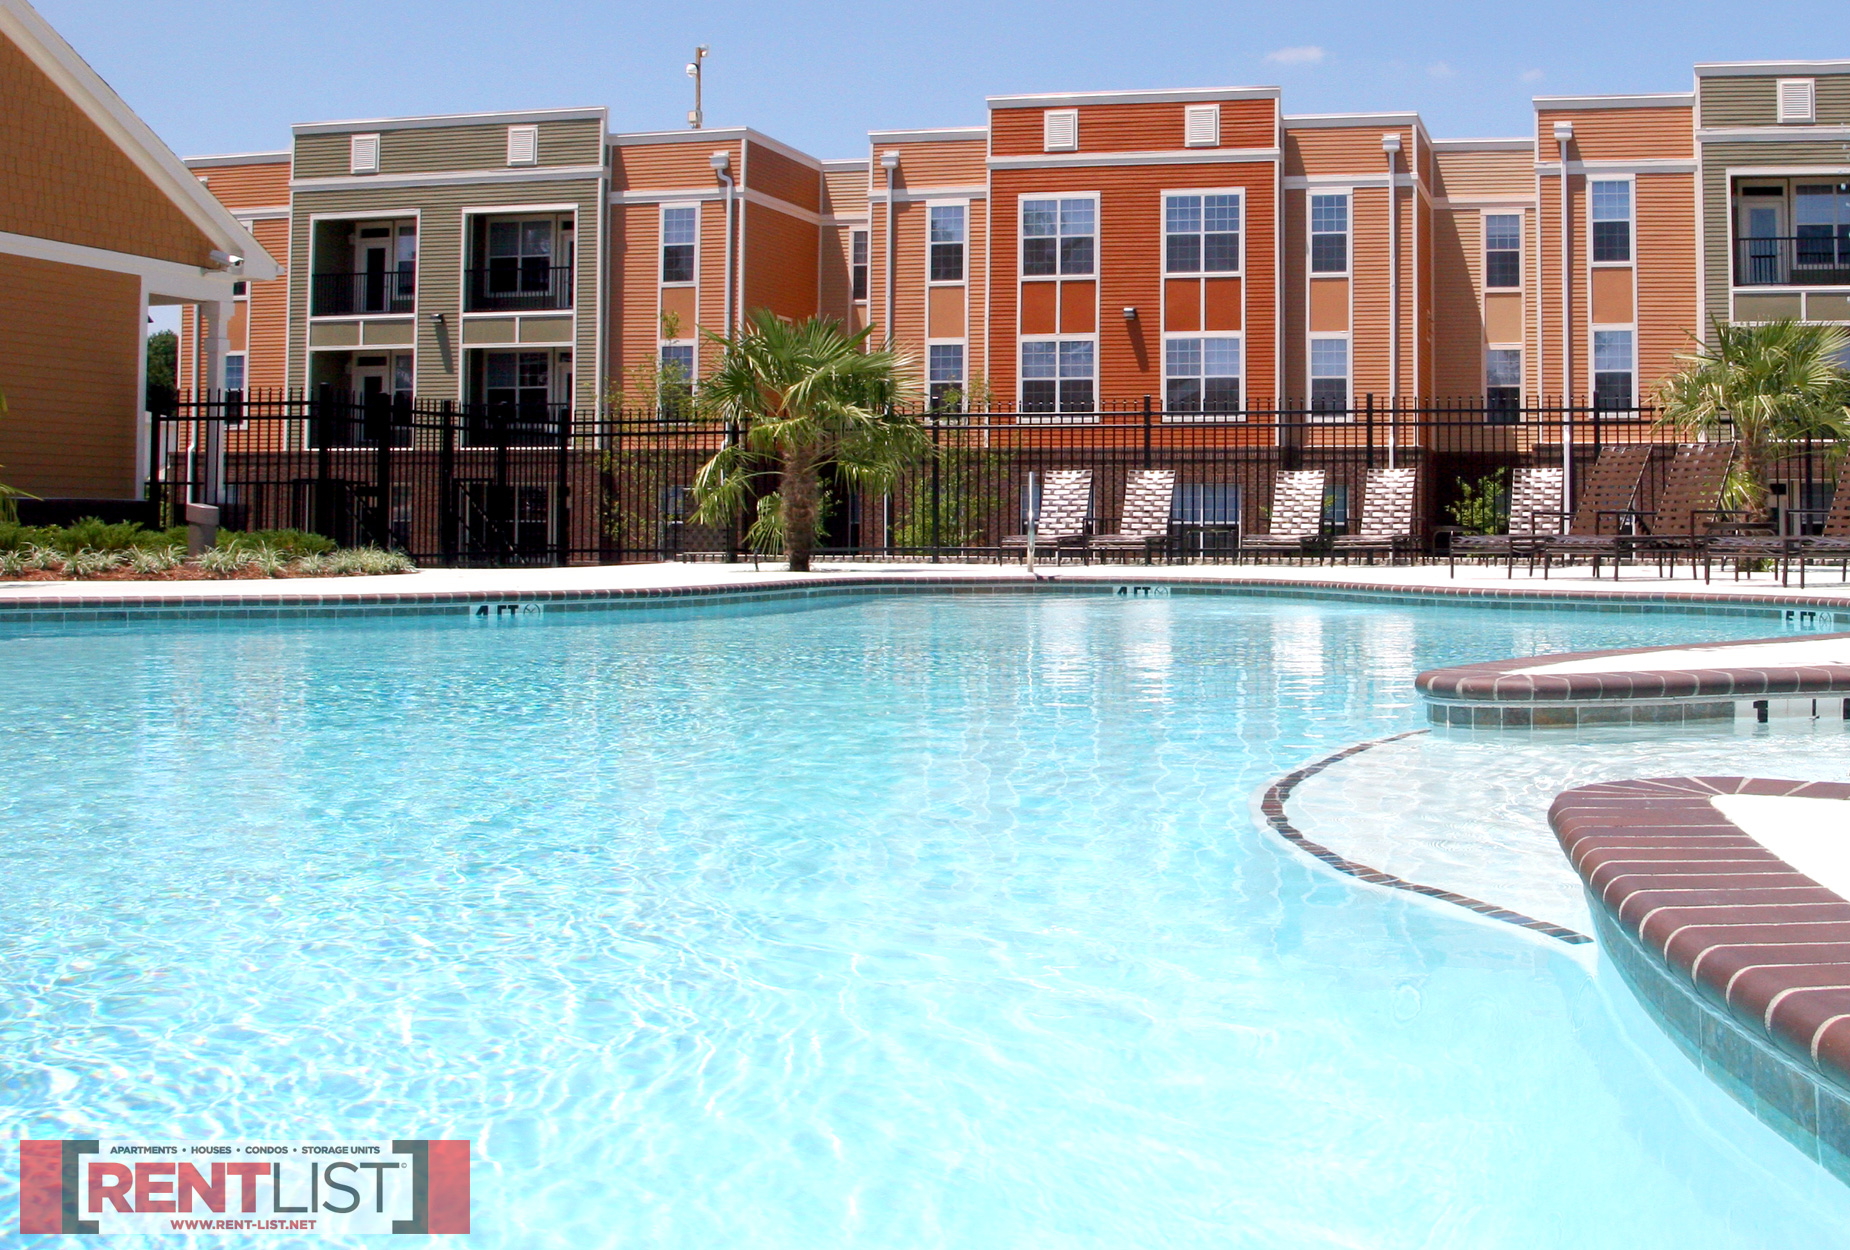 Lafayette place rental apartments in oxford mississippi - One bedroom apartments in oxford ms ...